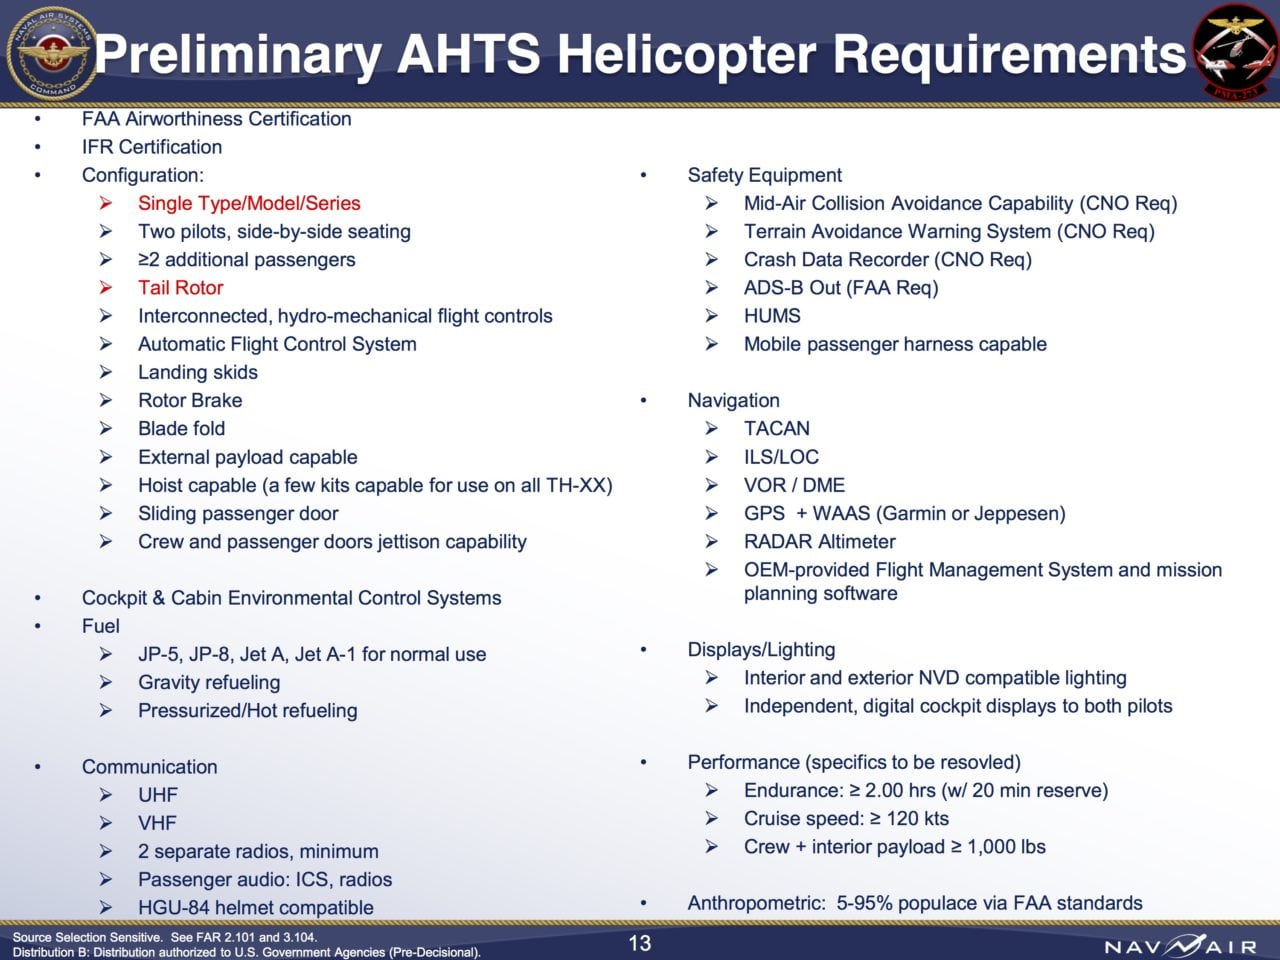 Preliminary AHTS US Navy helicopter requirements